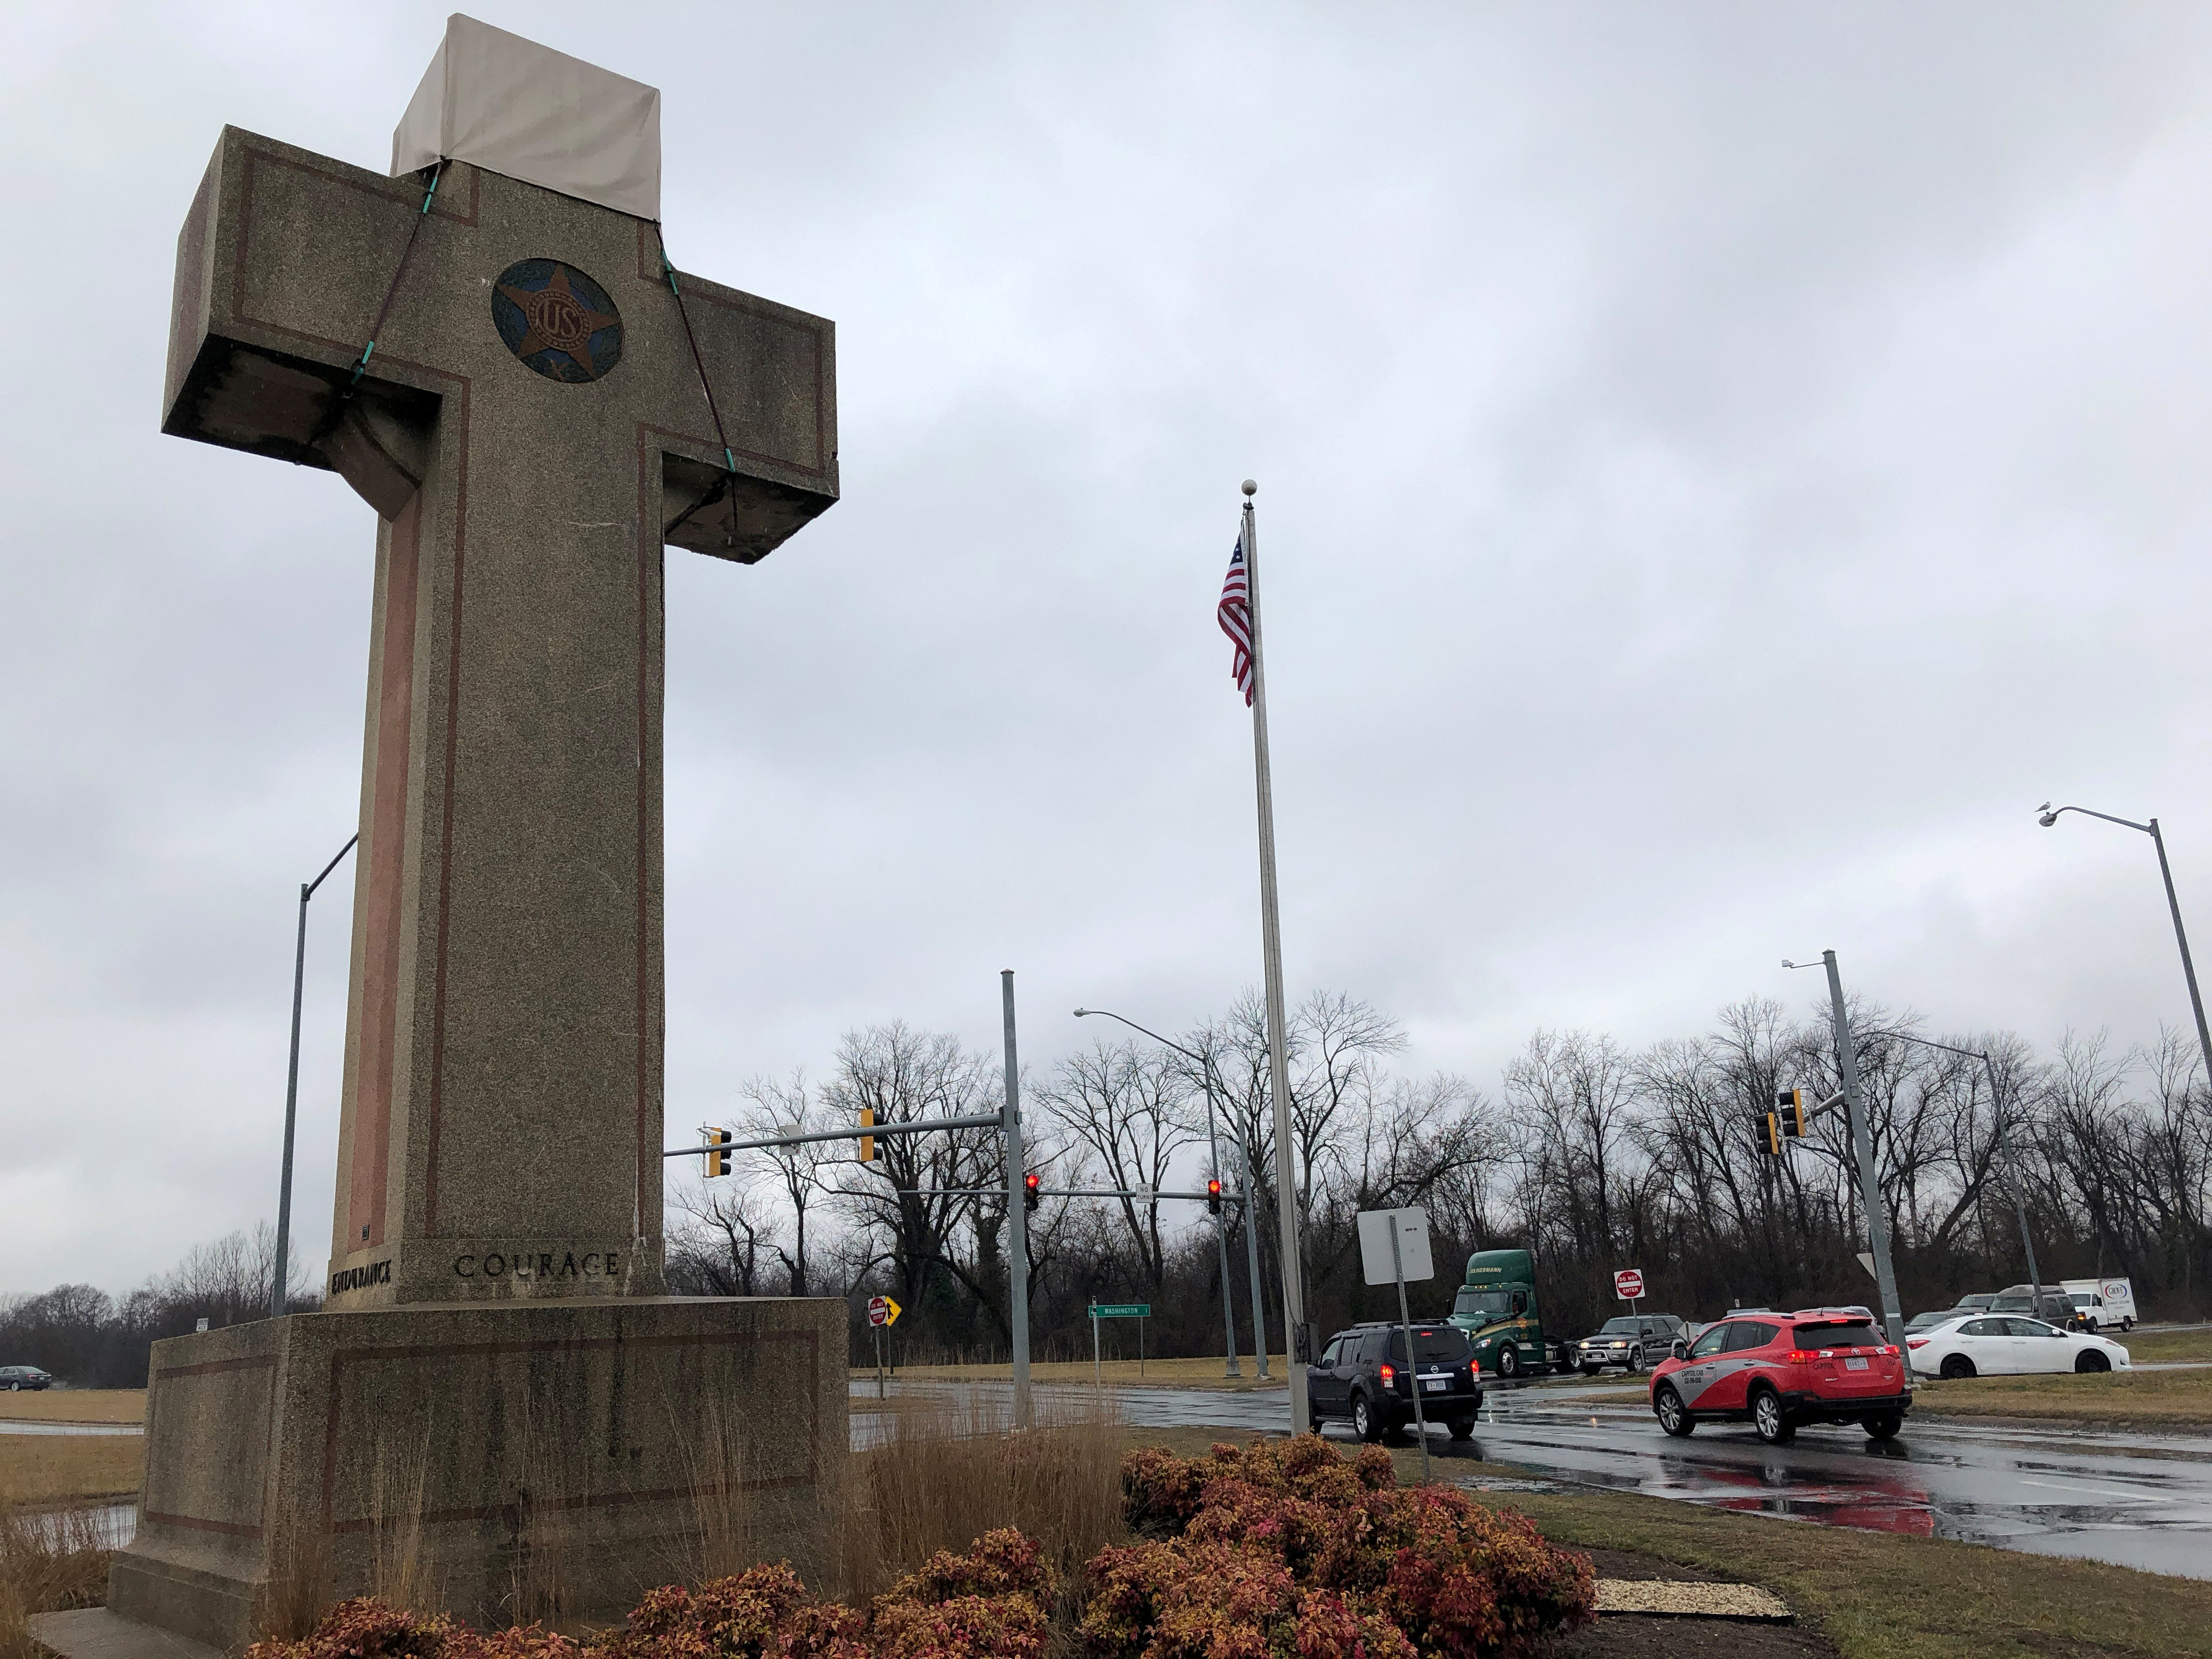 A concrete cross commemorating servicemen killed in World War One, the subject of a religious rights case now before the Supreme Court, is seen in Bladensburg, Maryland. REUTERS/Lawrence Hurley